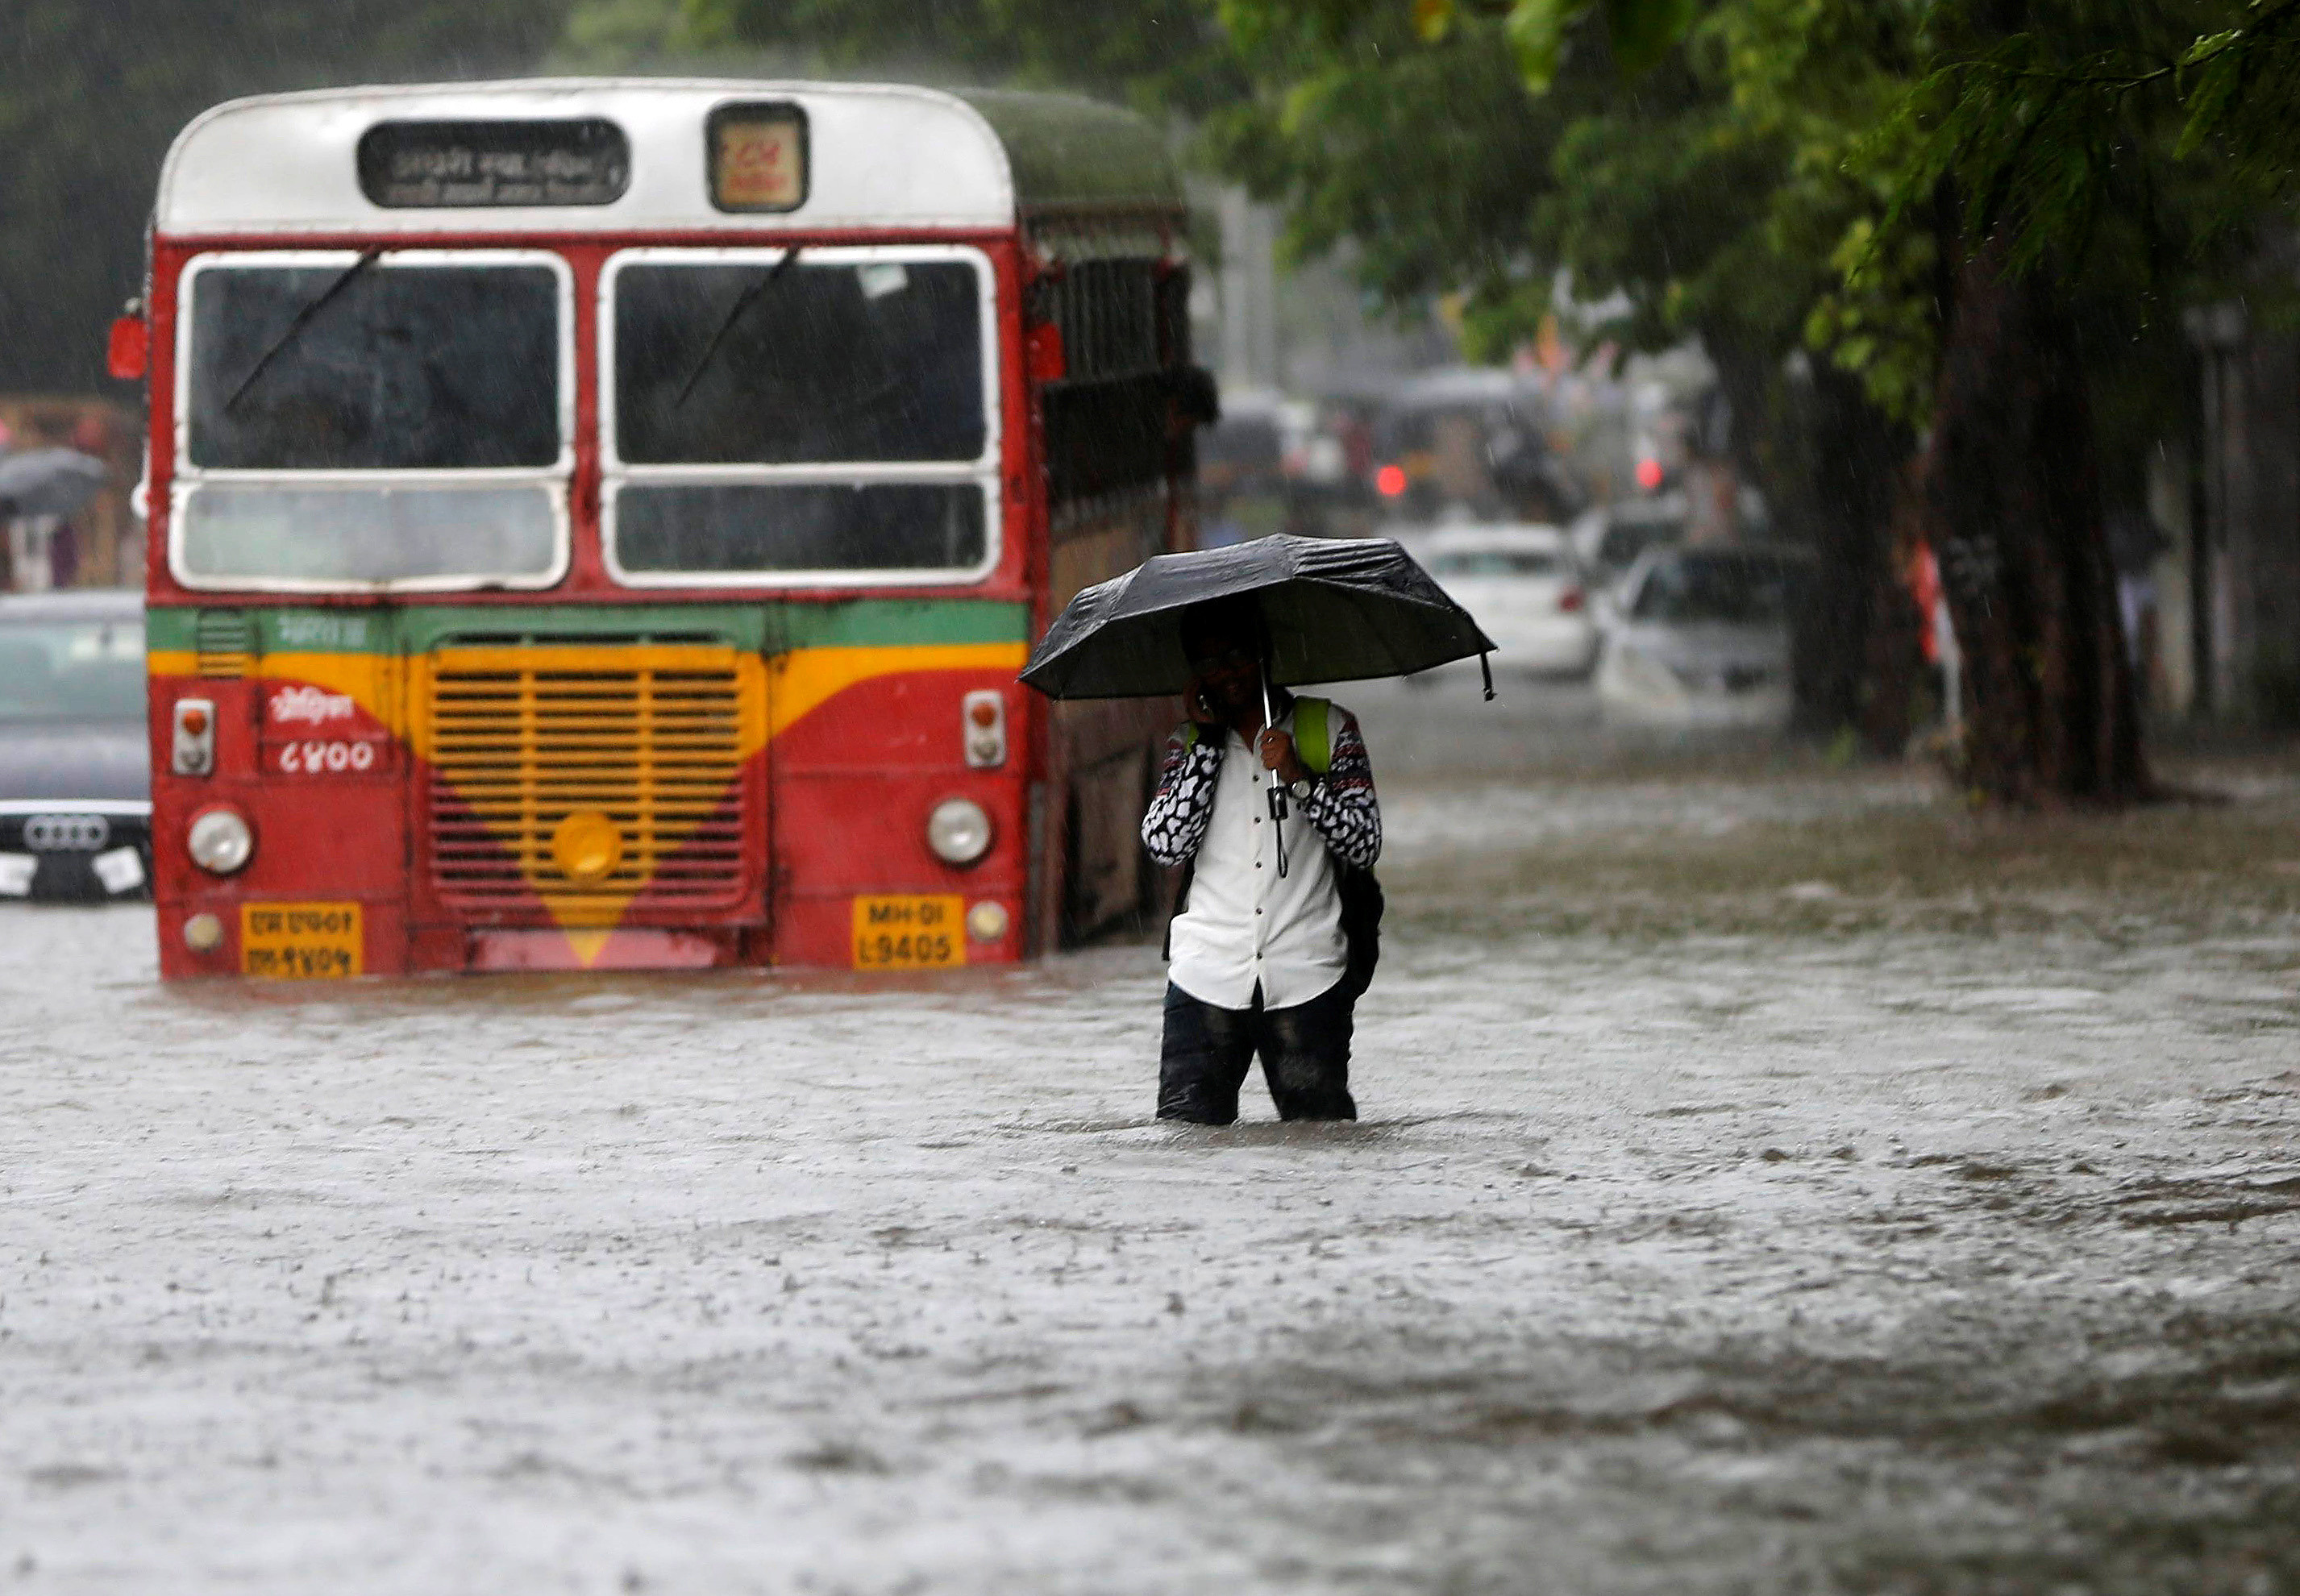 A man walks past a stranded public transport bus on a road flooded by heavy rains in Mumbai, India, August 5, 2016.